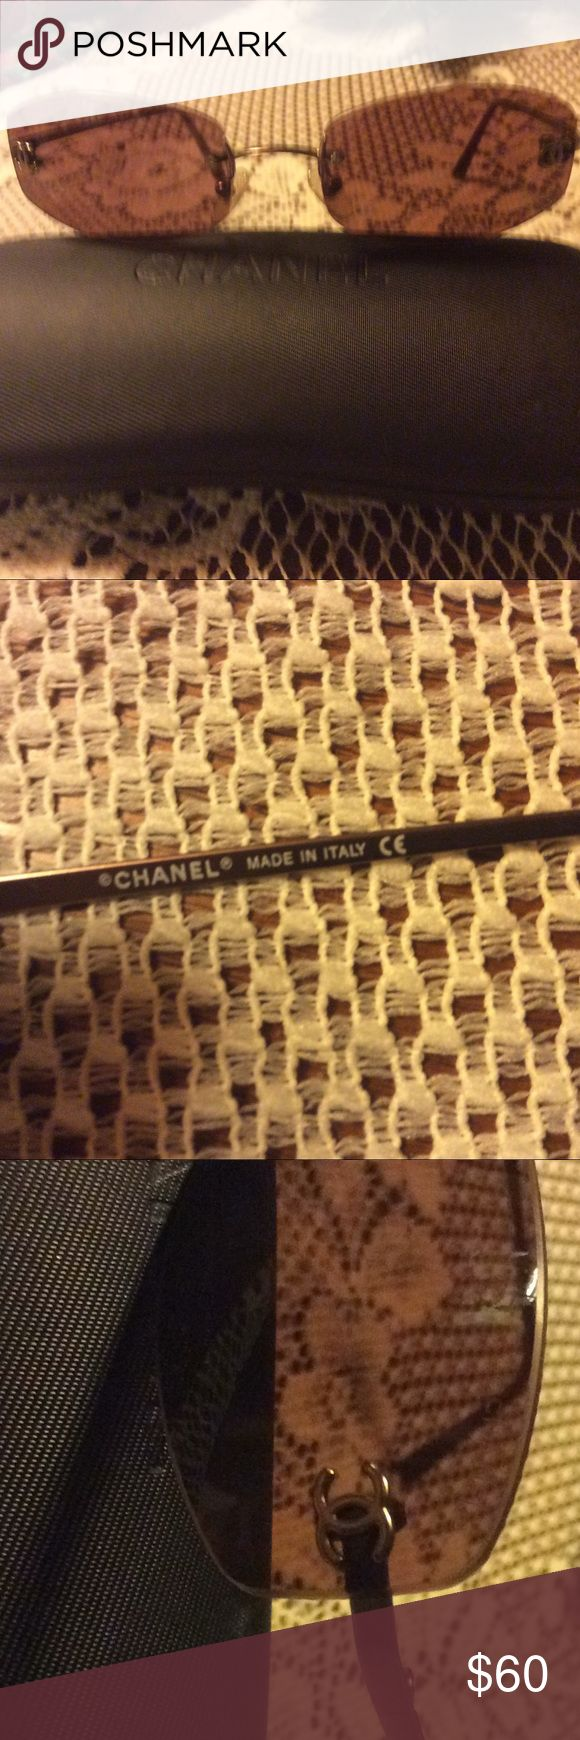 💥SALE💥RIMLESS CHANEL SUNGLASSES Nice Chanel rimless sunglasses with brown tint. Vintage Chanel logo on lenses. Scratches on right lens -not really noticeable unless you are looking for them.  They Do not interfere with vision.  Price reflects imperfections. Look great on smaller faces. Chanel Accessories Sunglasses